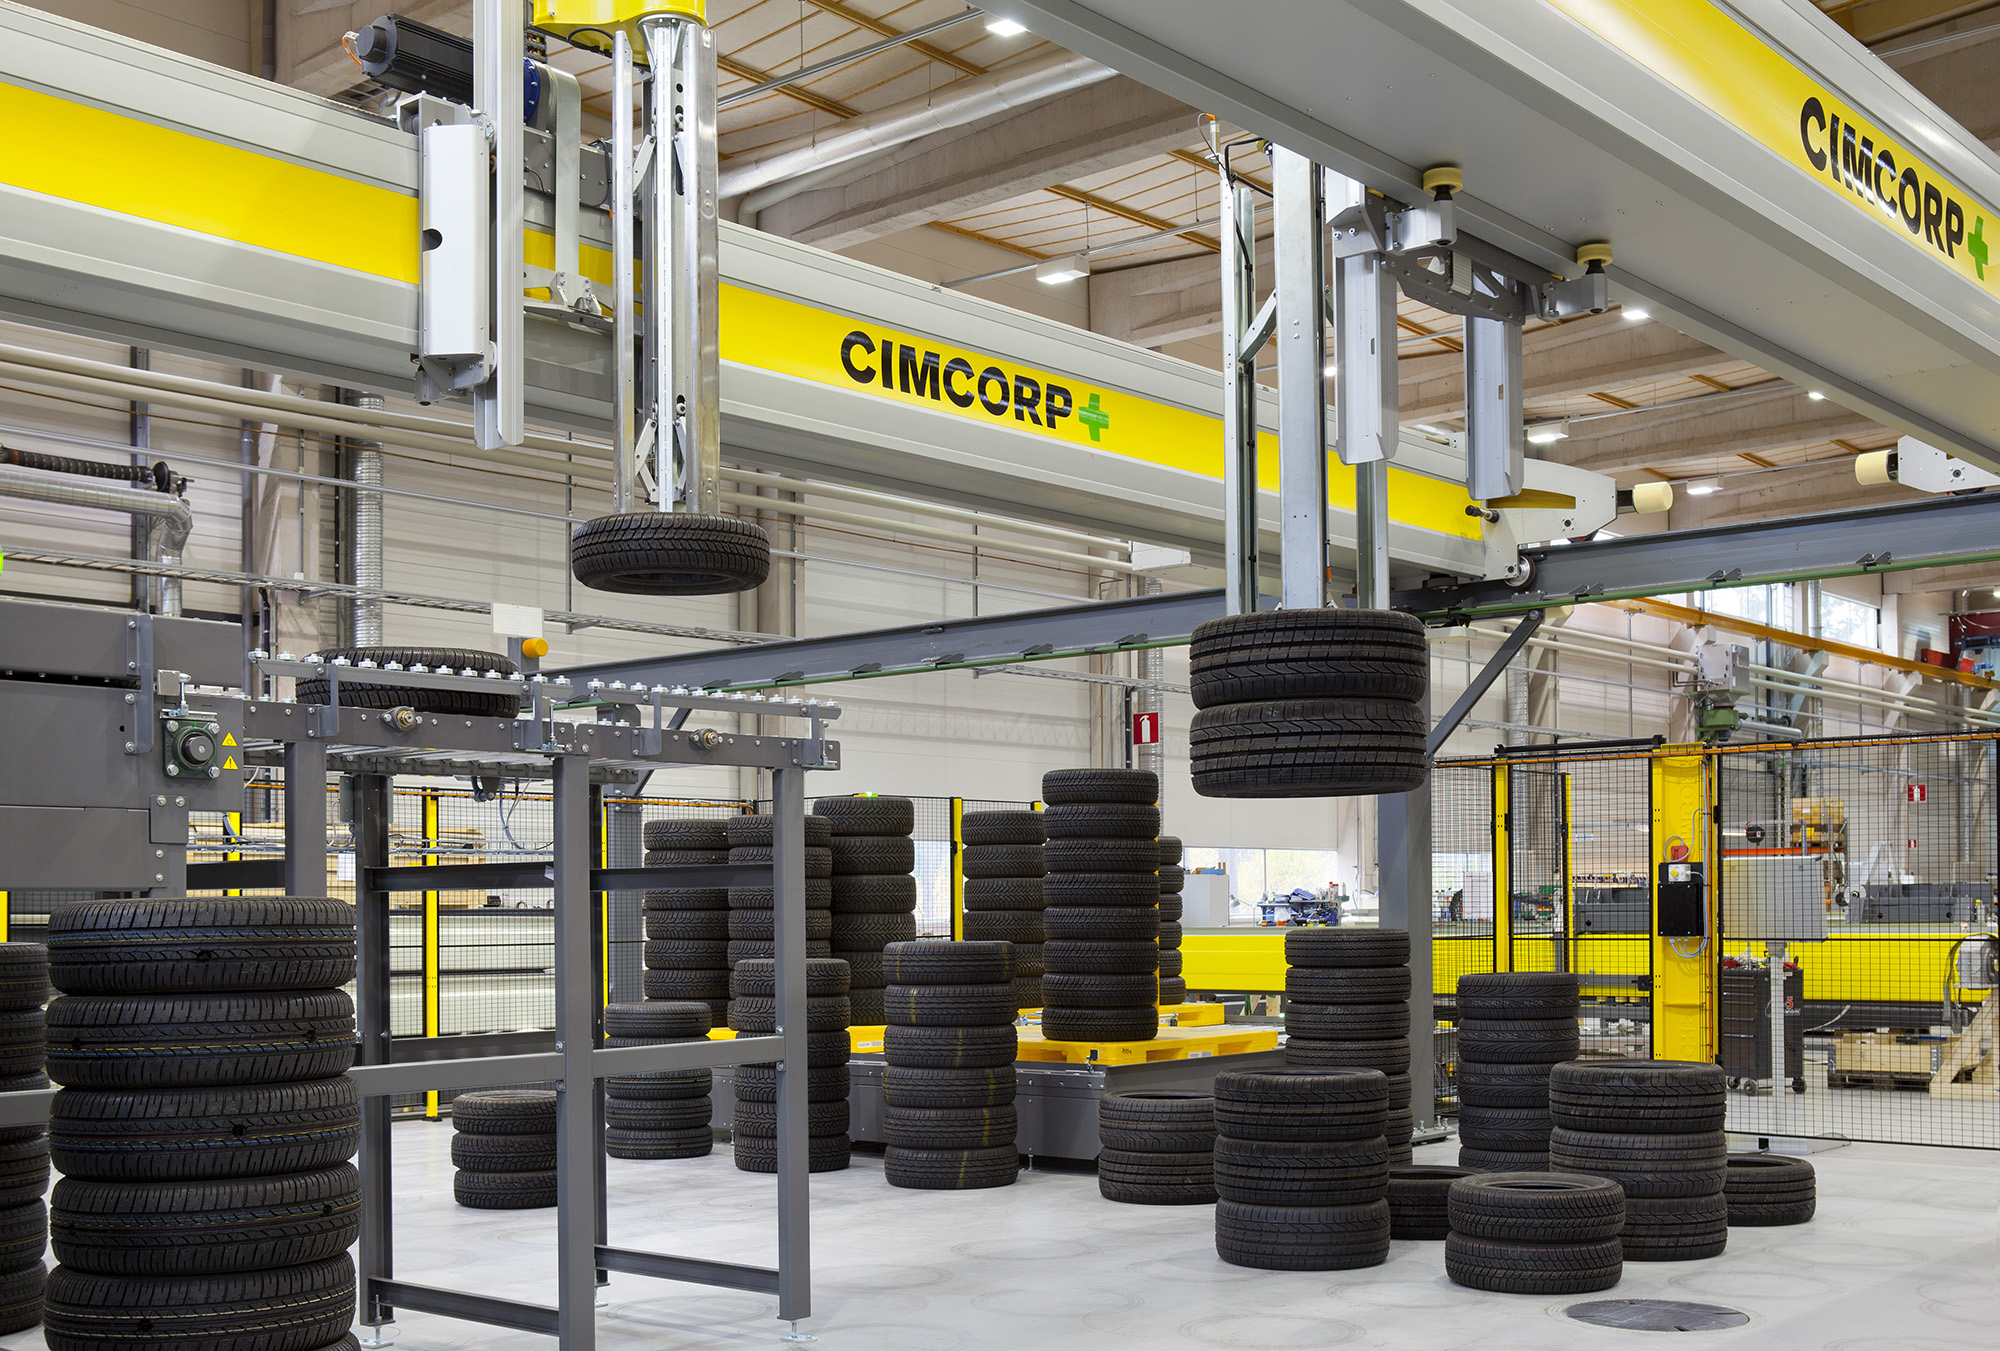 Linglong Partners with Cimcorp for Plant Automation